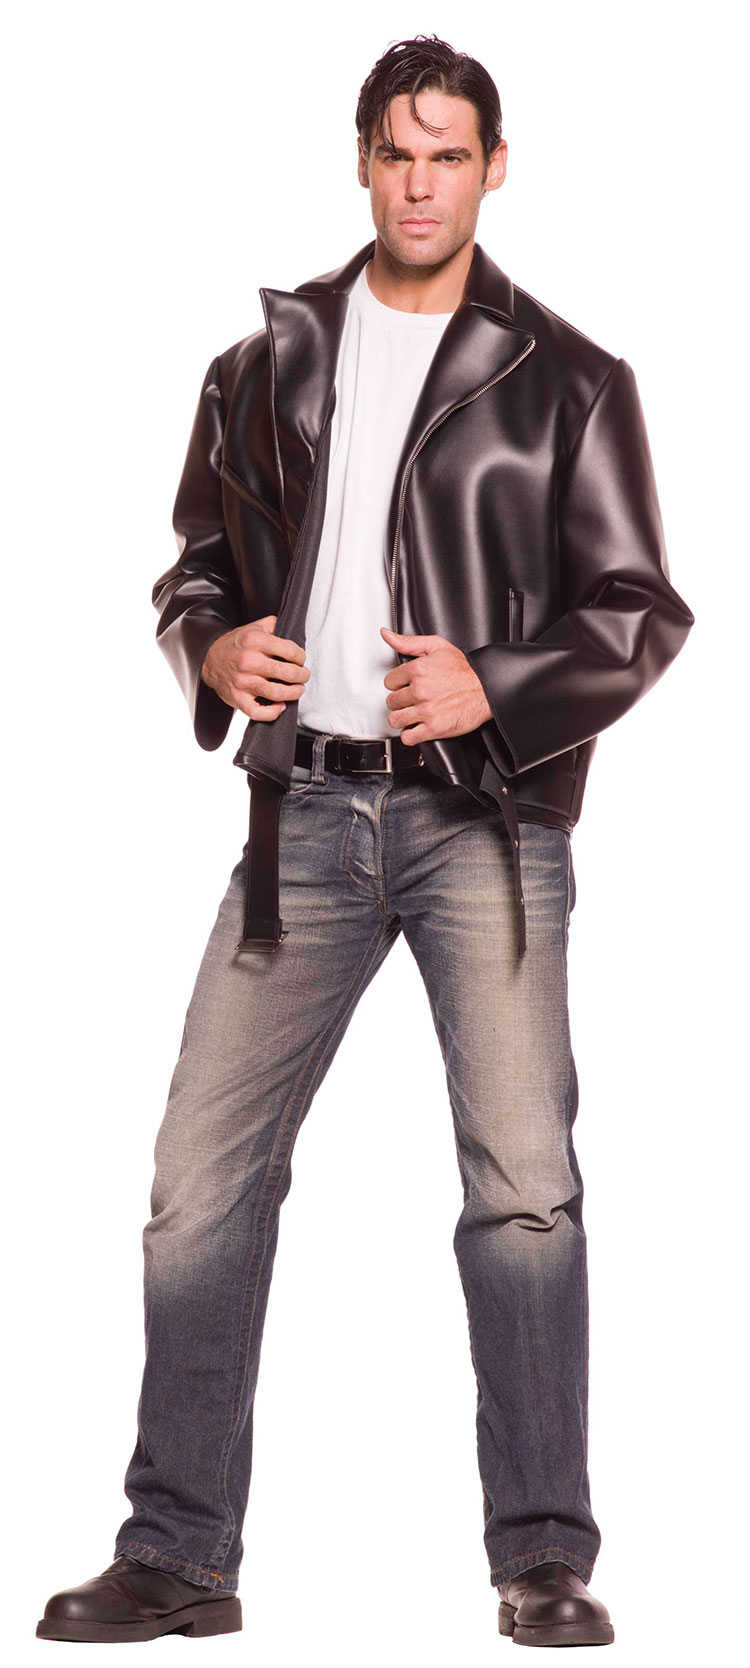 greaser costumes for men women kids parties costume. Black Bedroom Furniture Sets. Home Design Ideas